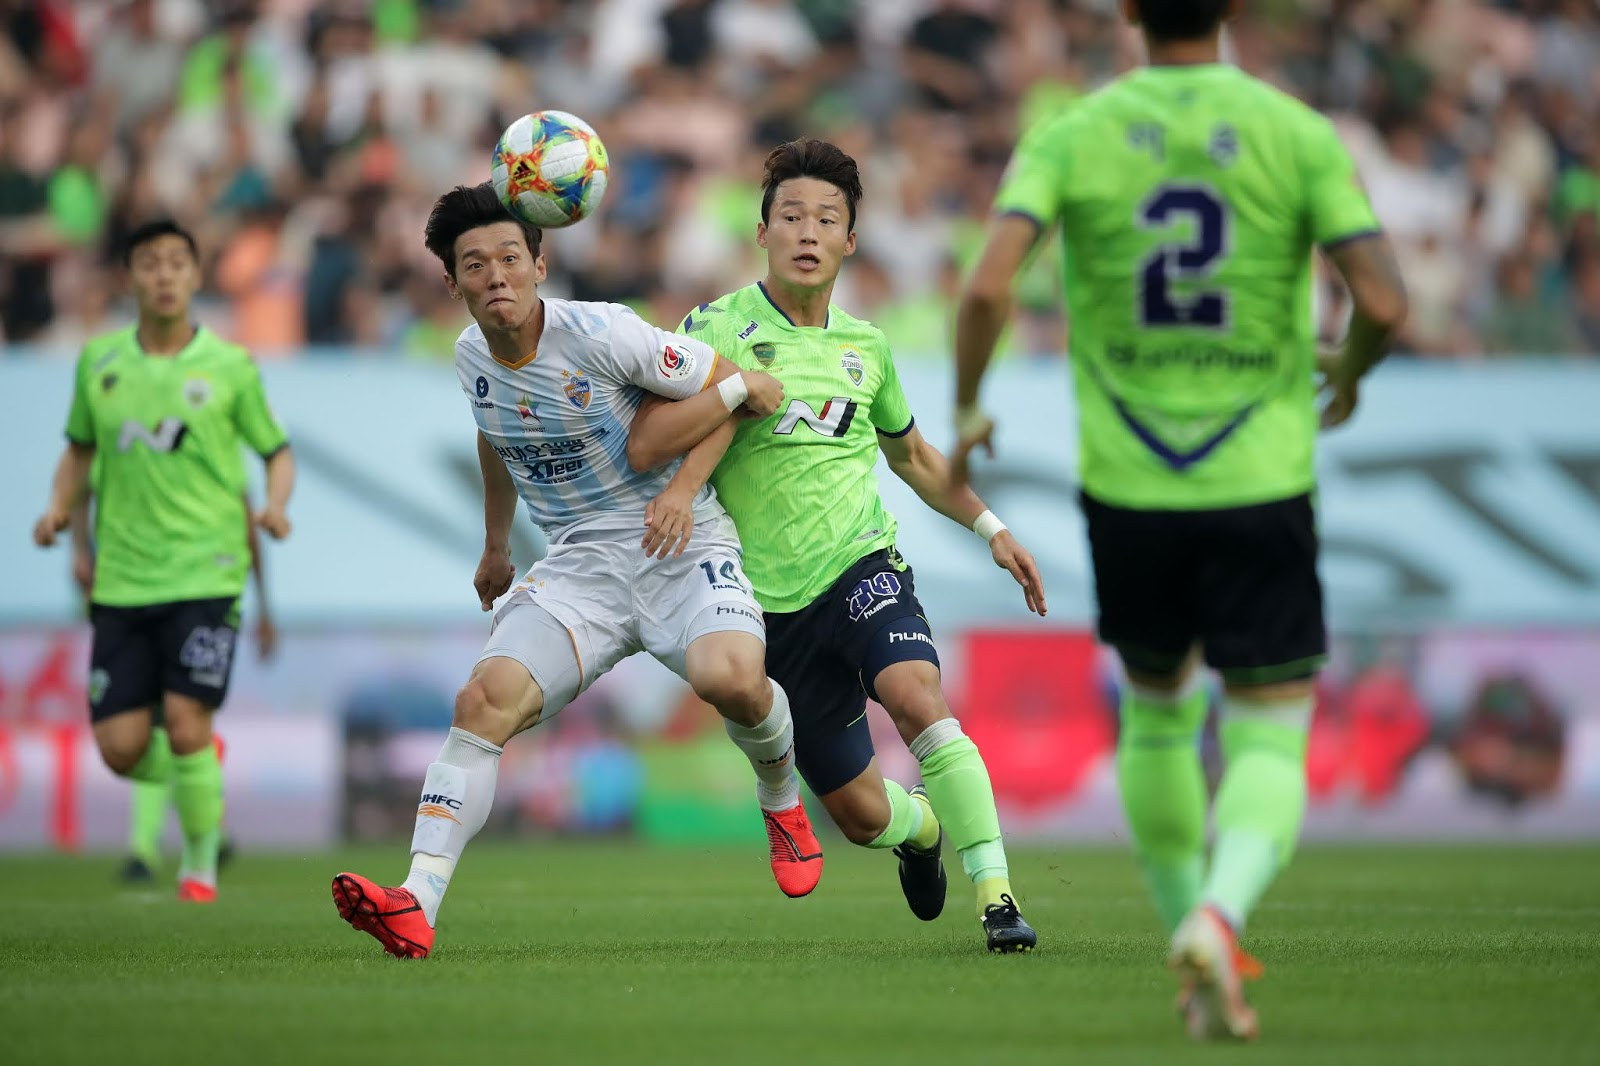 K League 1 Preview: Jeonbuk Hyundai Motors vs Ulsan Hyundai